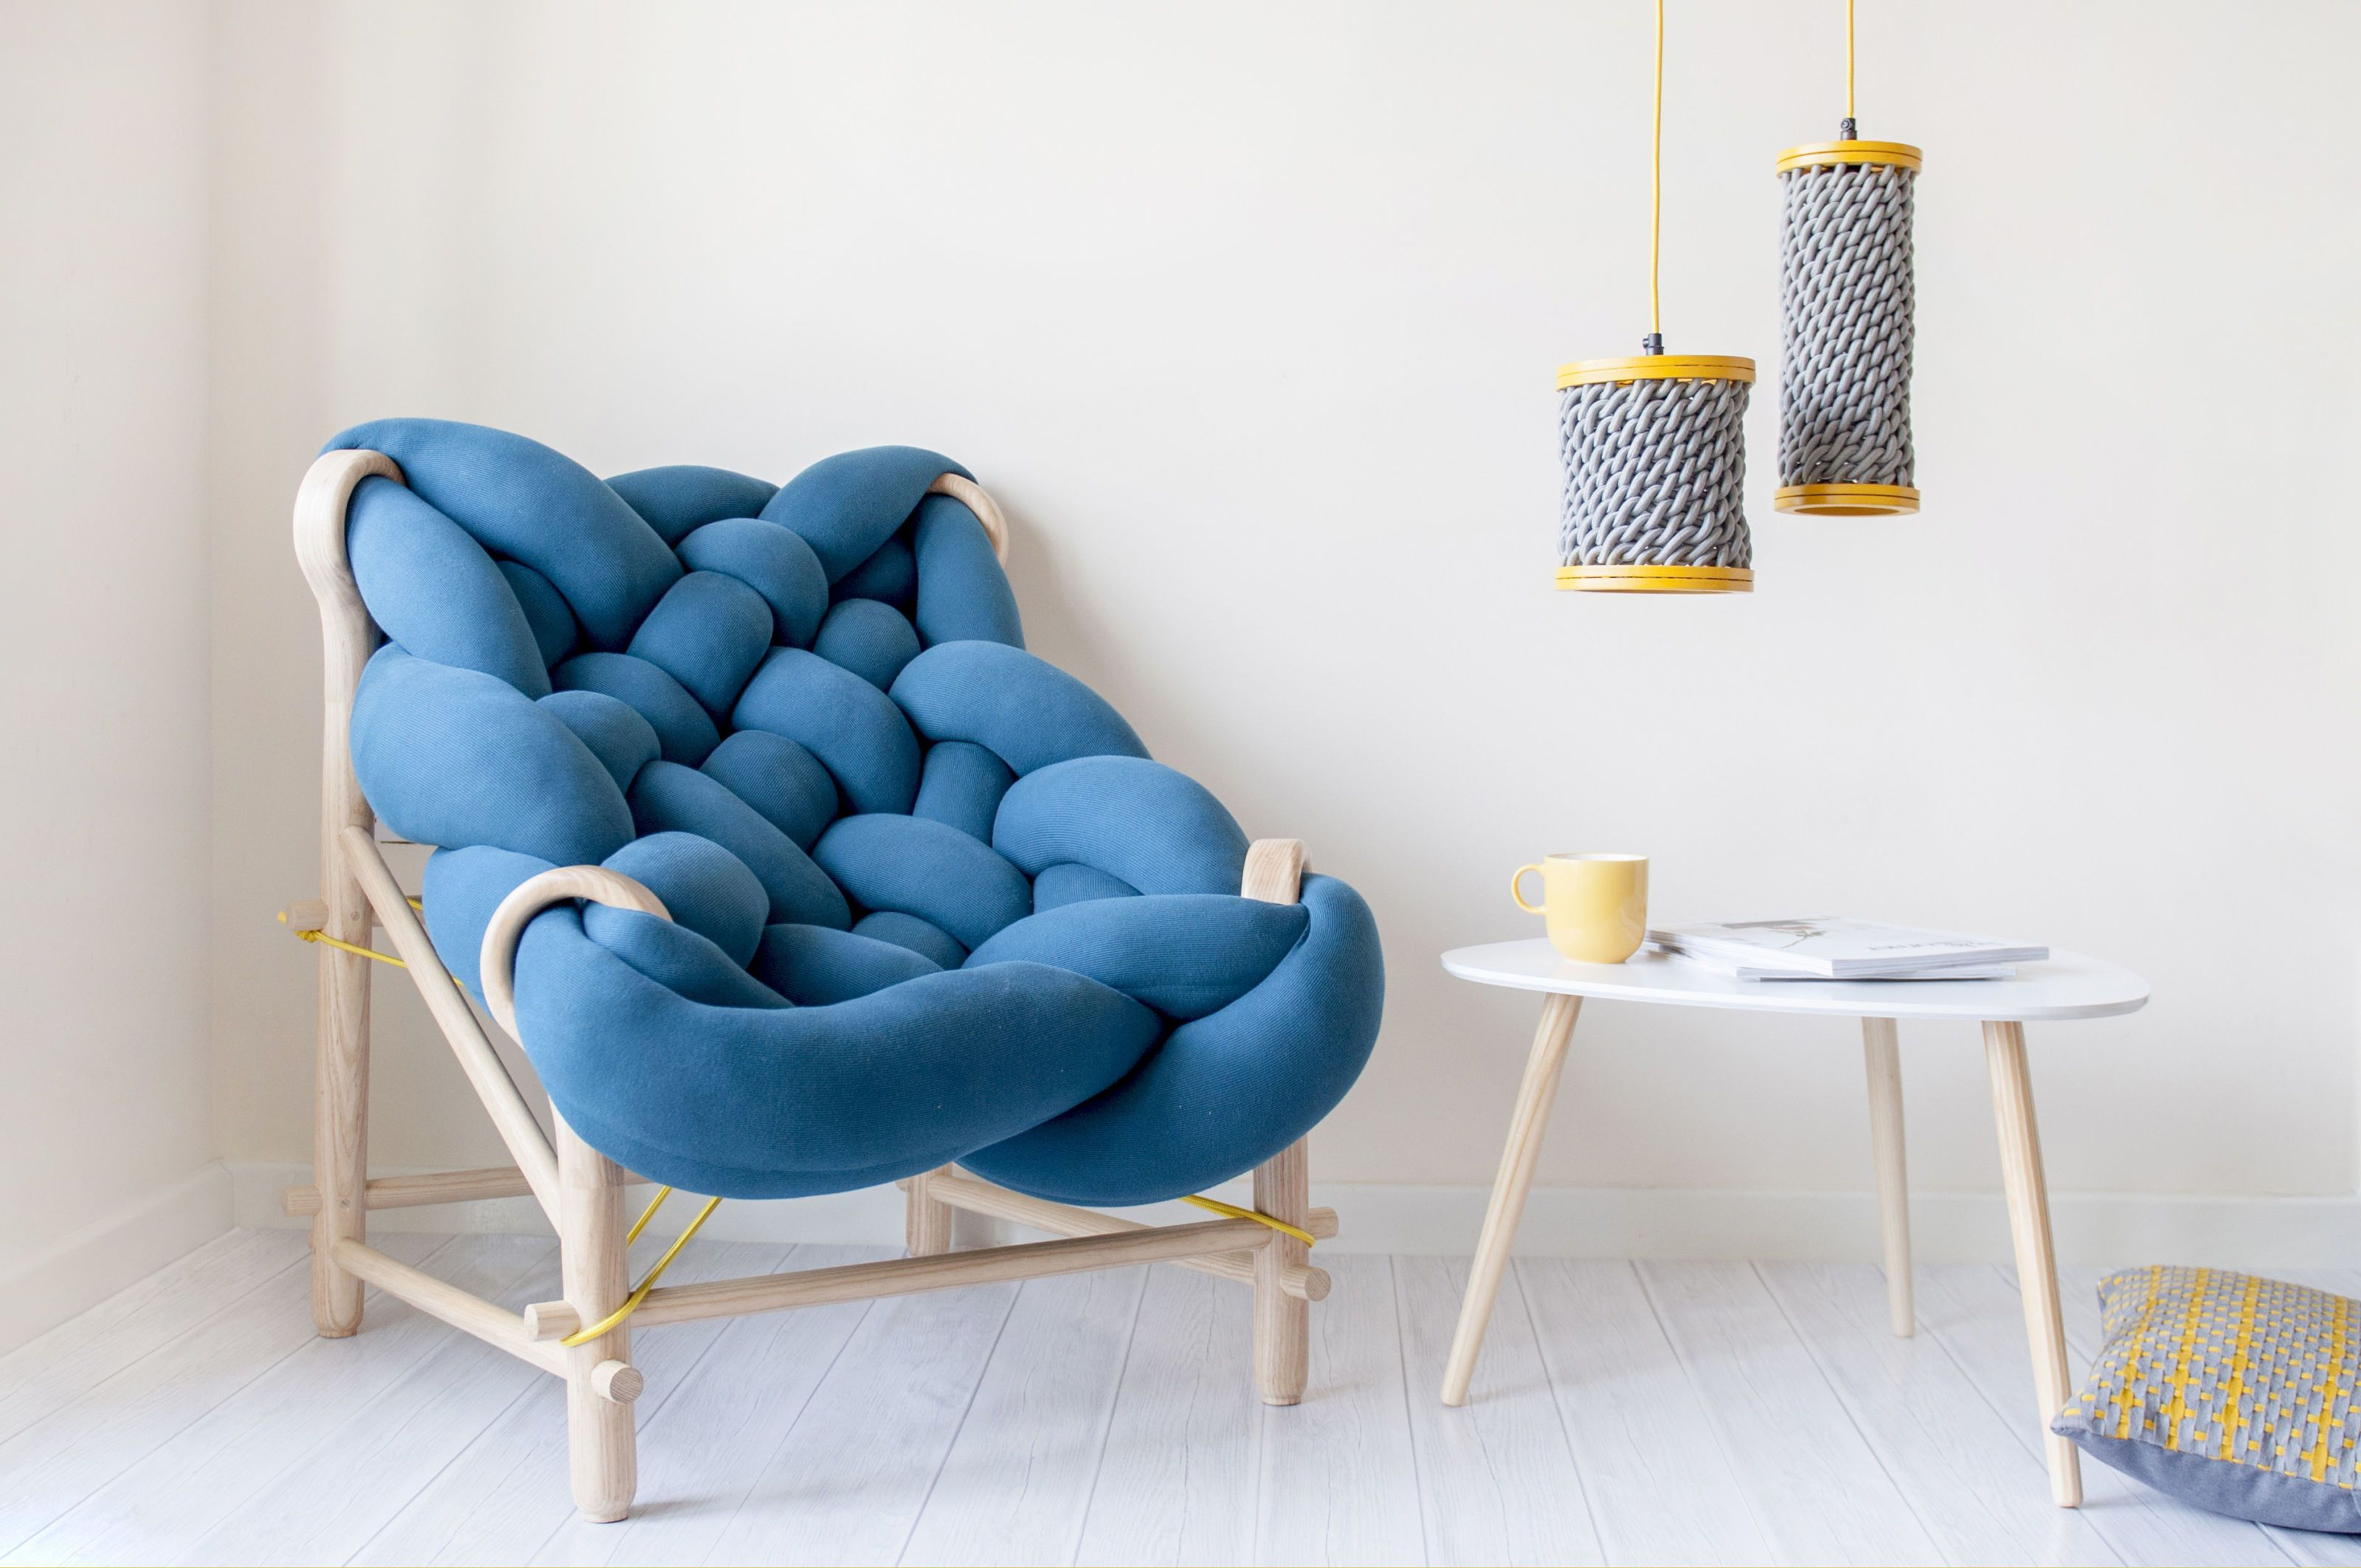 Woven chair of overstuffed knit tubes merges comfort with